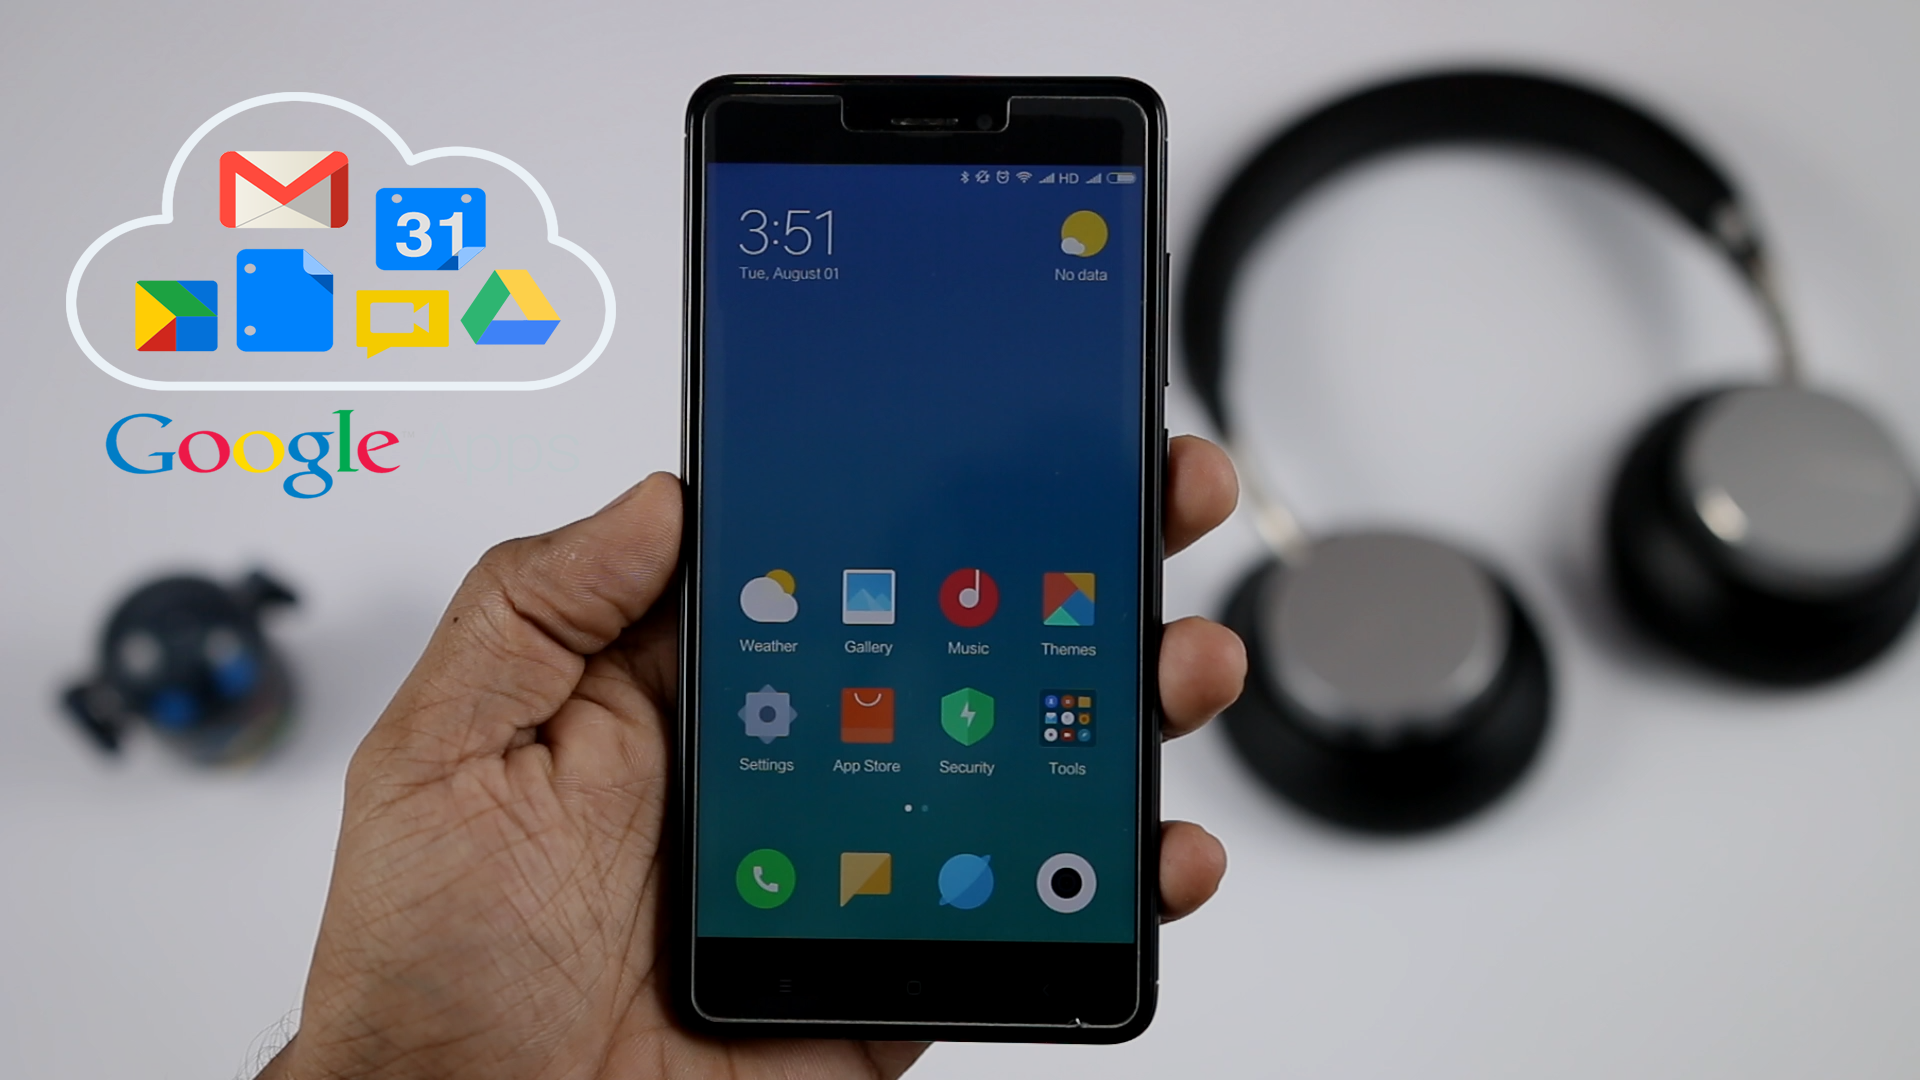 MIUI 9 Install Google Apps Without Flashing Zip File (One Click